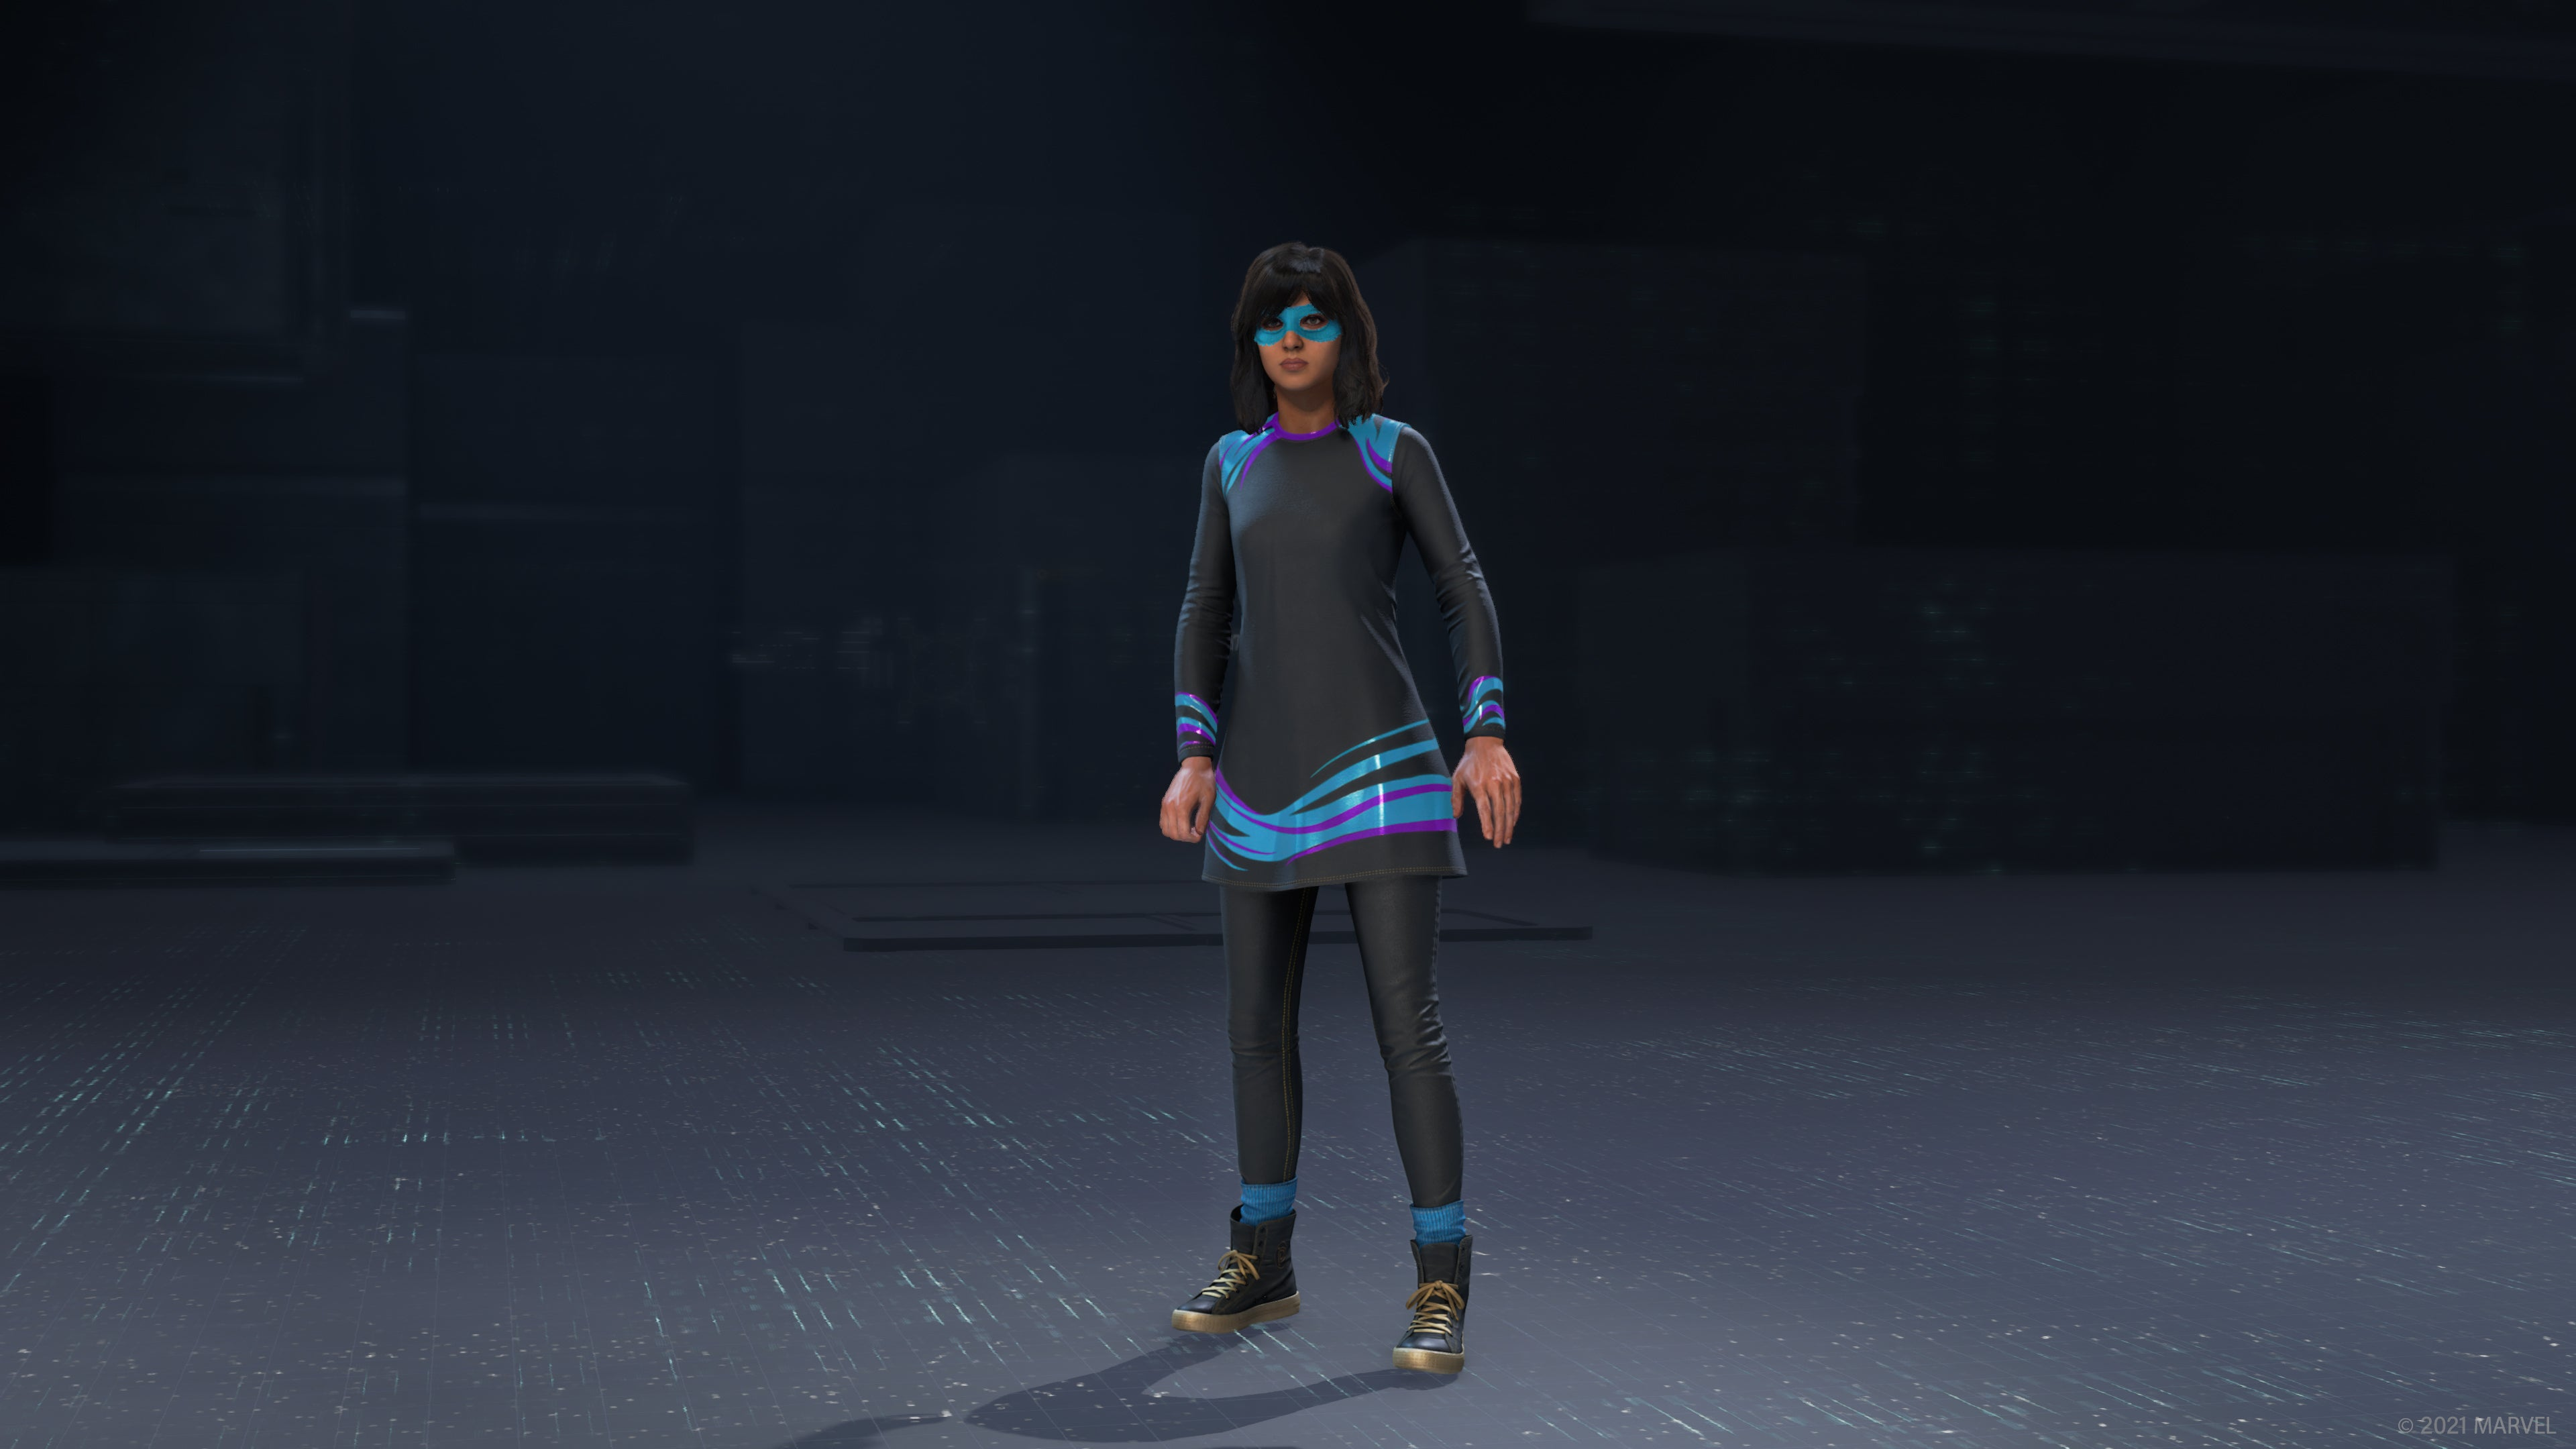 Ms. Marvel in her Beach Day outfit standing in the in-game outfit preview.